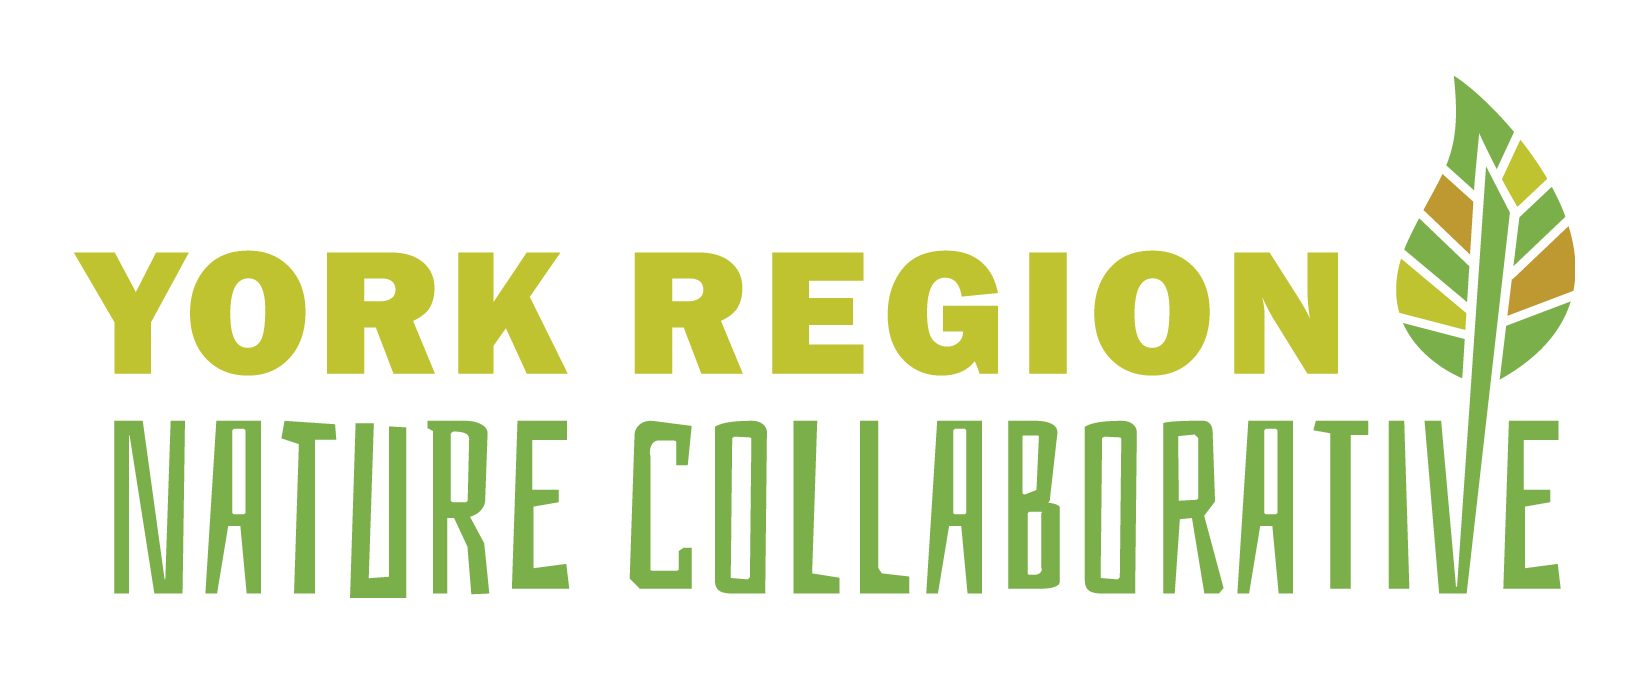 York Region Nature Collaborative logo